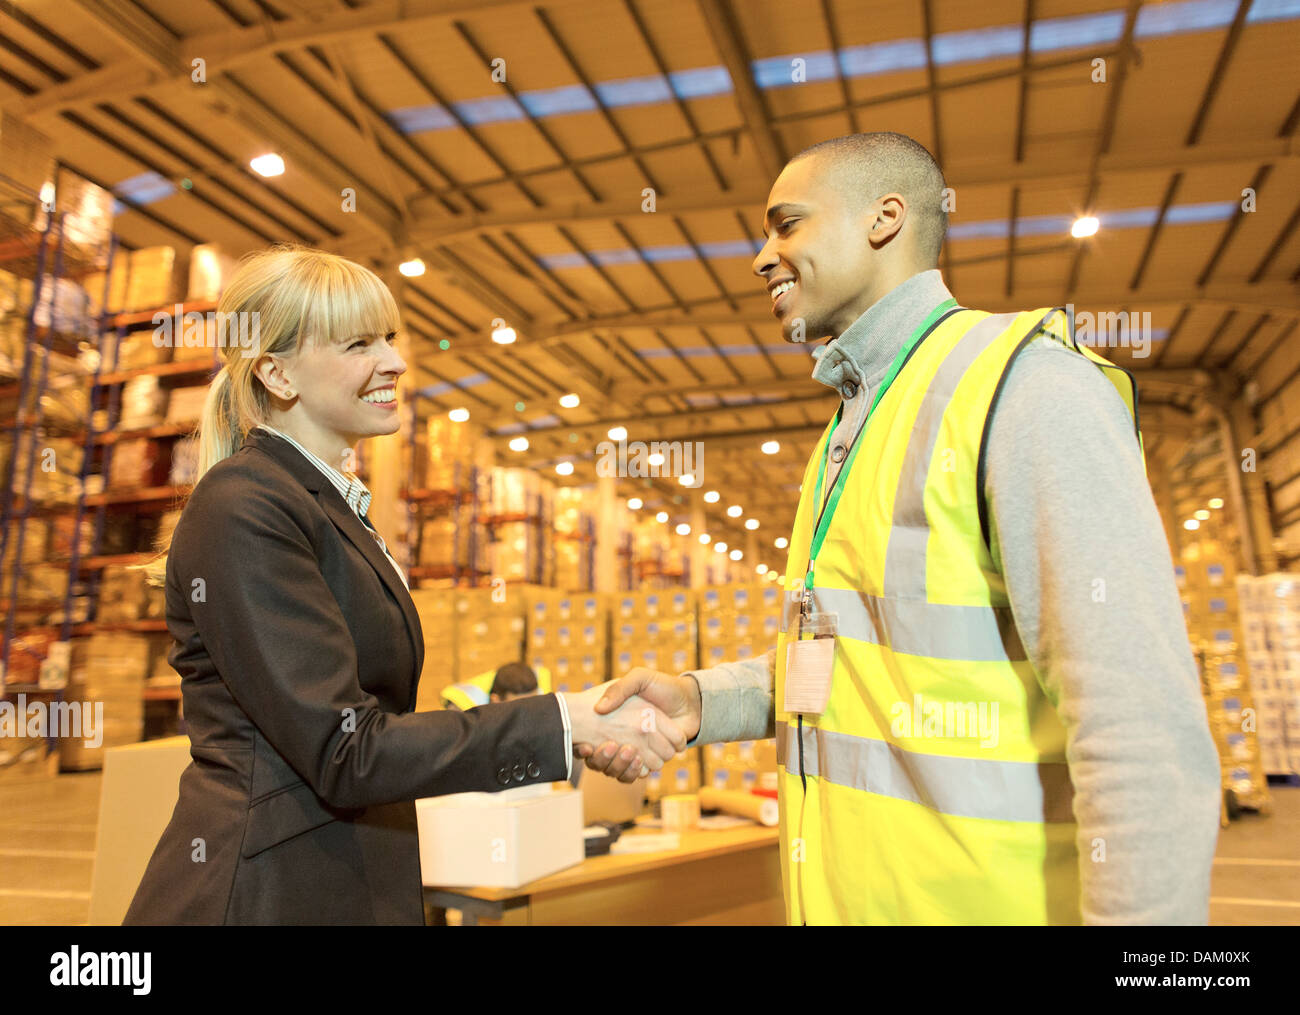 Businesswoman and worker shaking hands in warehouse - Stock Image